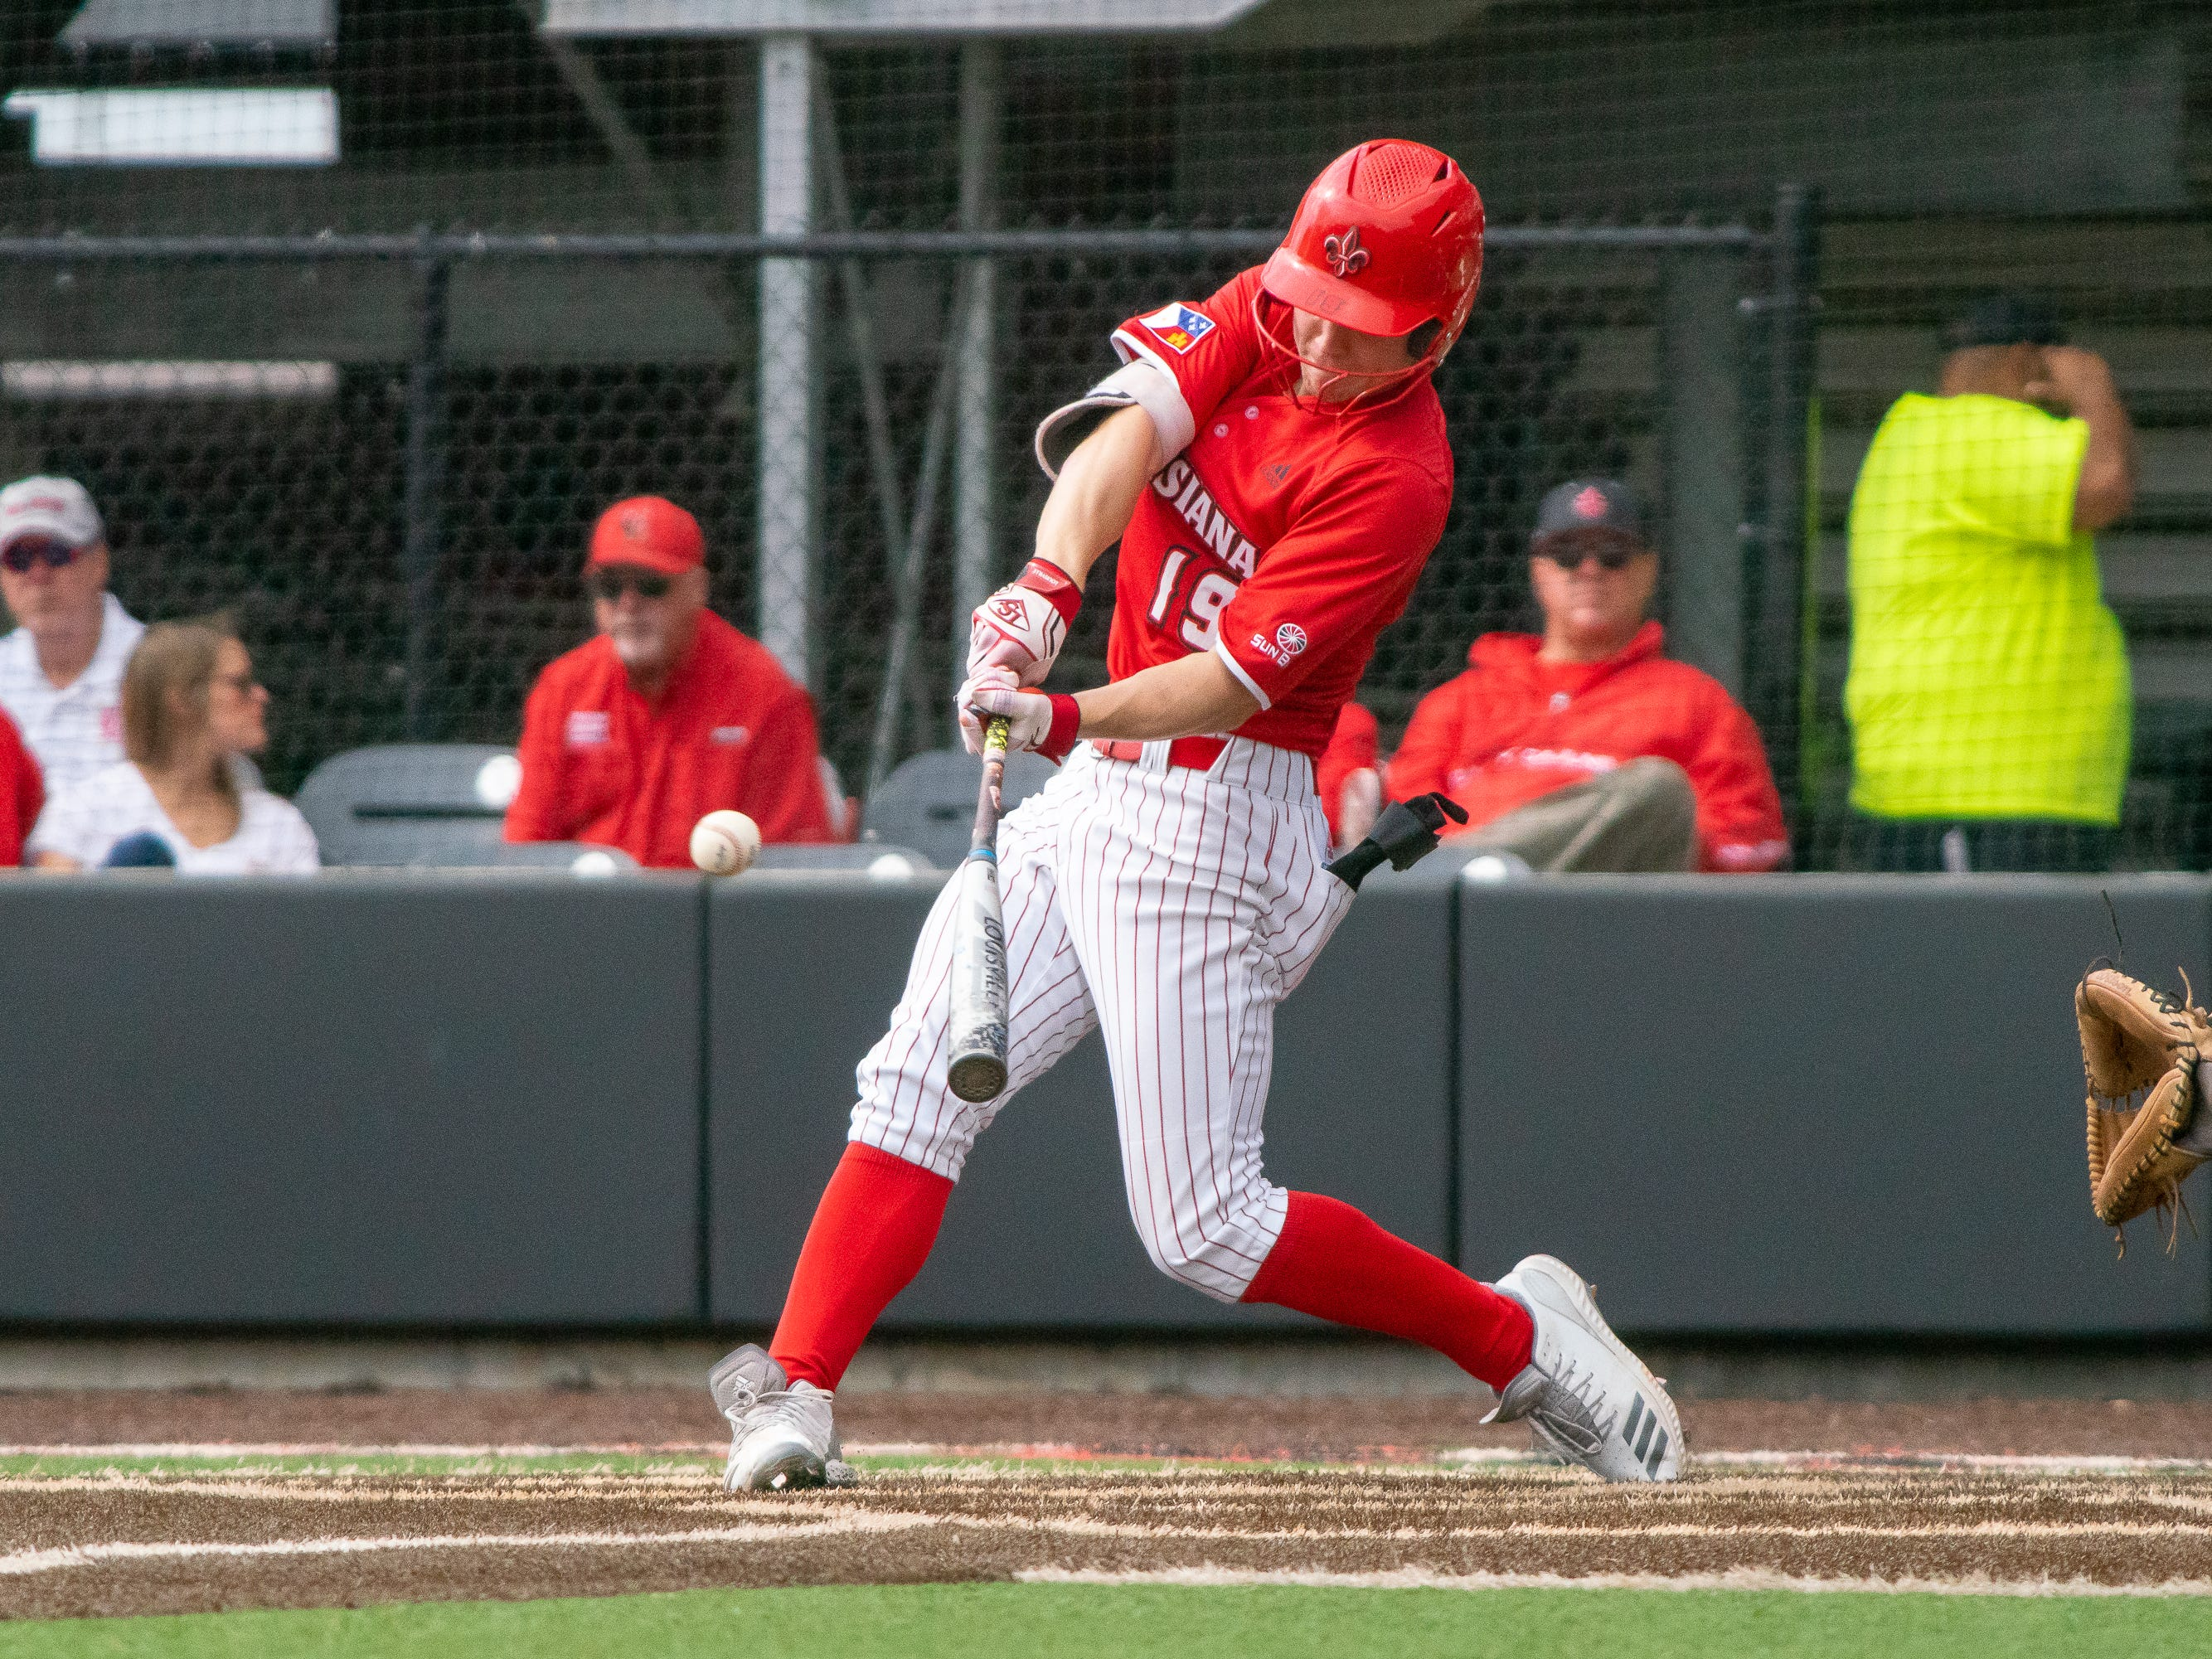 UL's Hunter Kasuls takes a swing at the pitch as the Ragin' Cajuns take on the Loyola-Marymount Lions at M.L. Tigue Moore Field on Saturday, March 9, 2019.